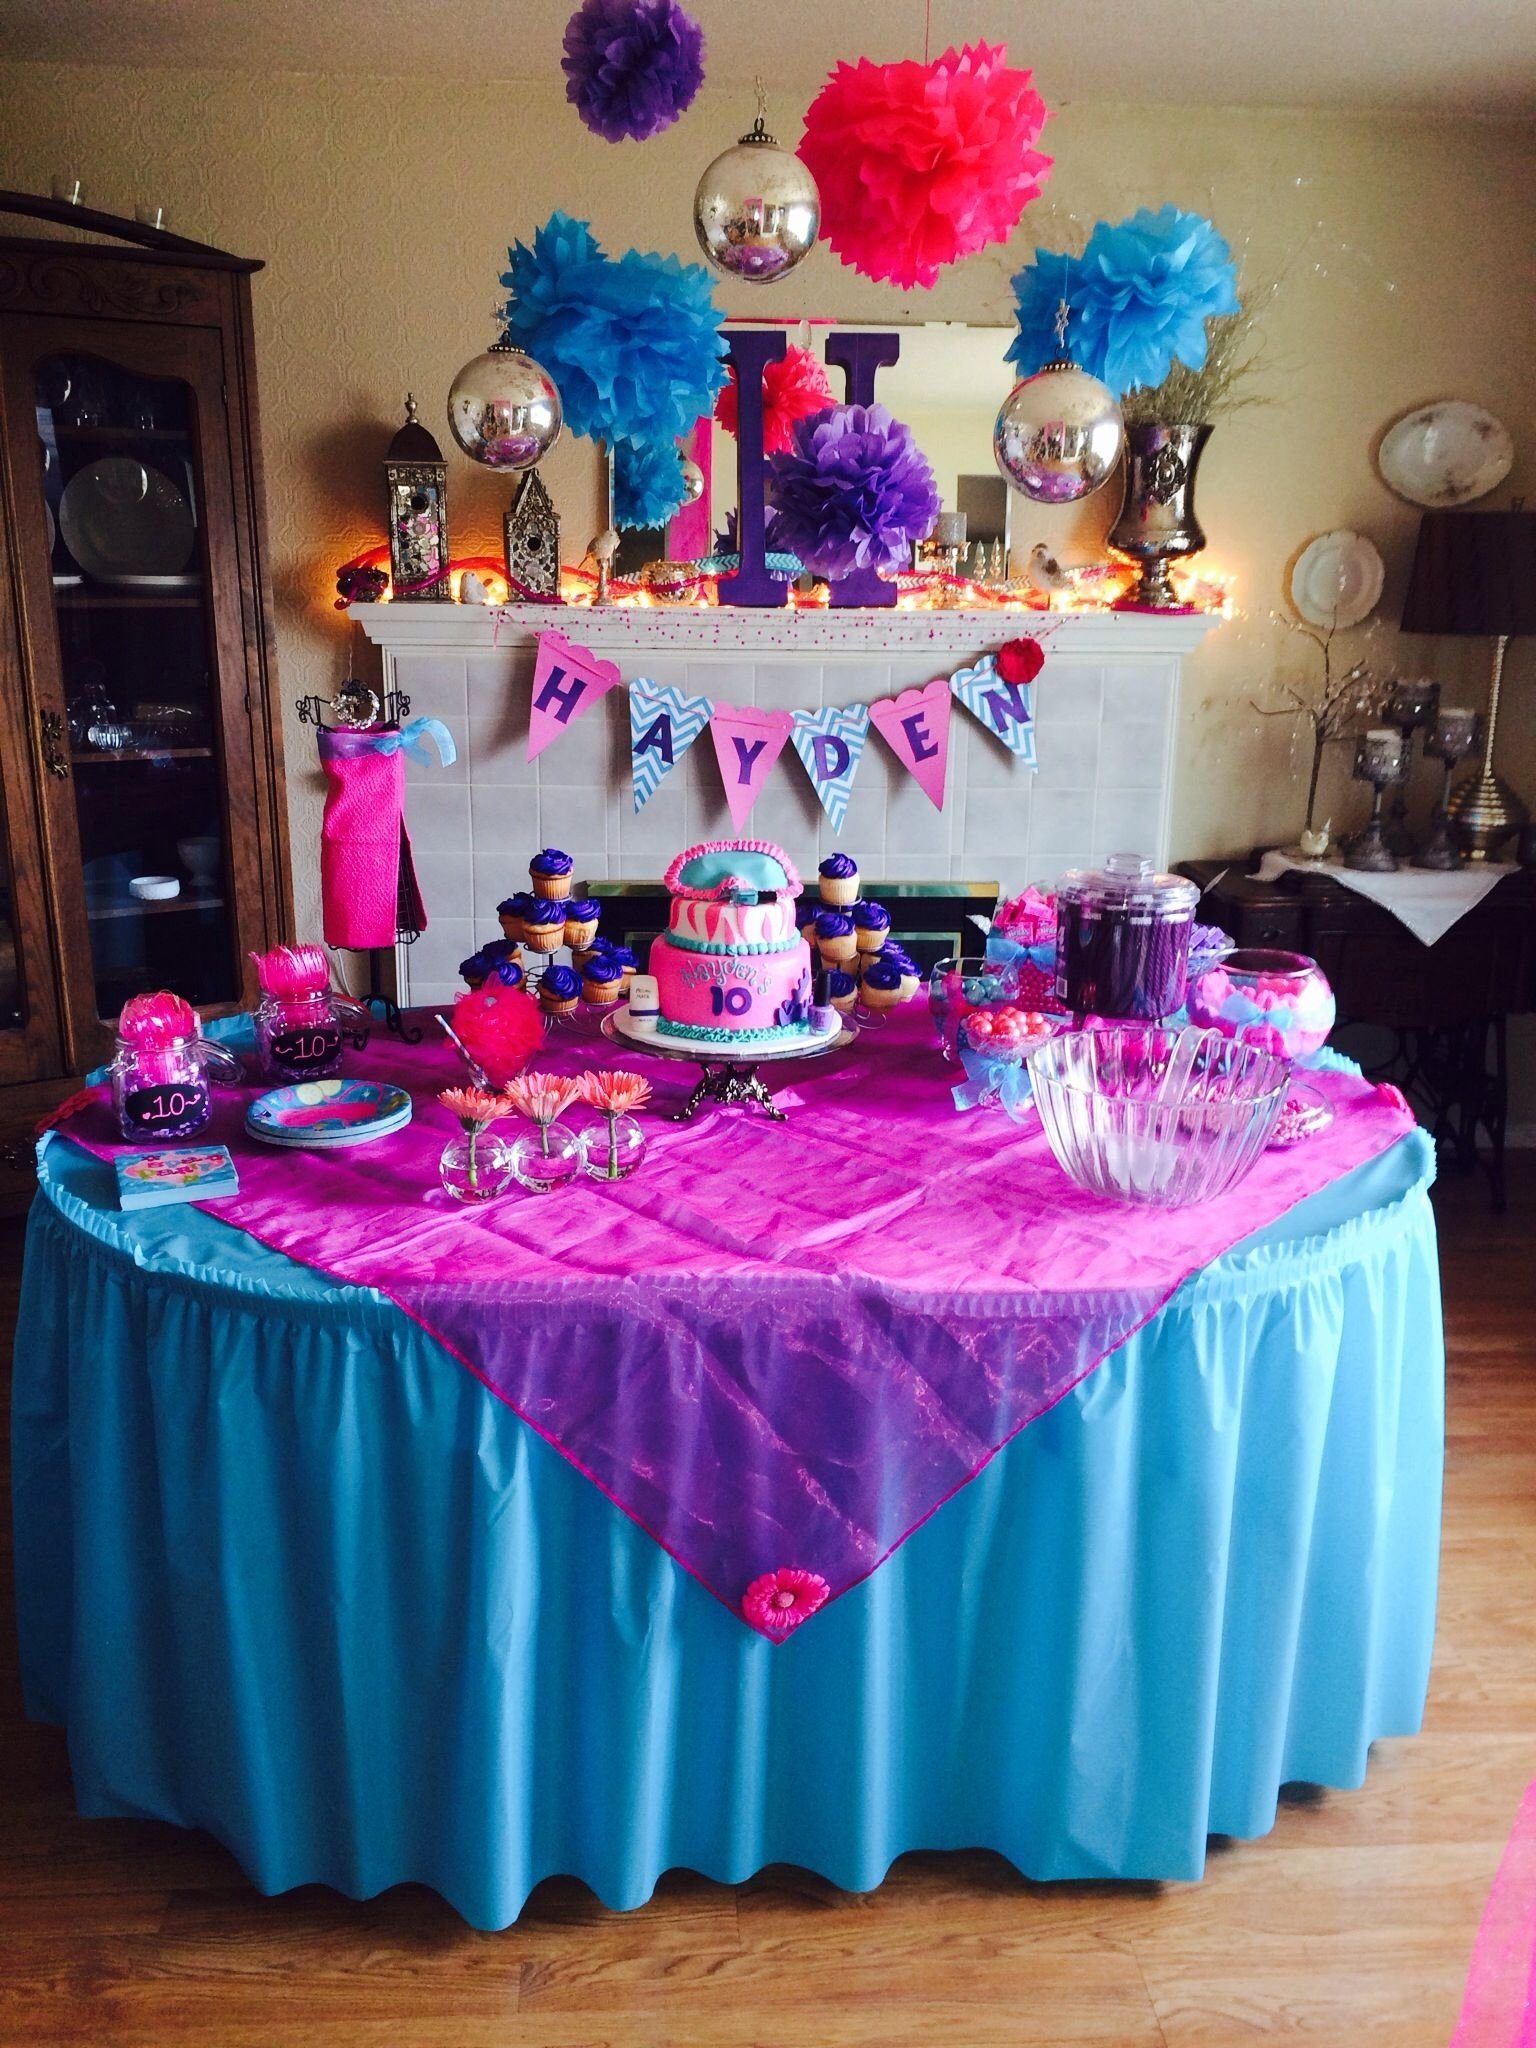 10 Gorgeous Birthday Ideas For 10 Yr Old Girl girls 10th birthday party party ideas pinterest 10th birthday 3